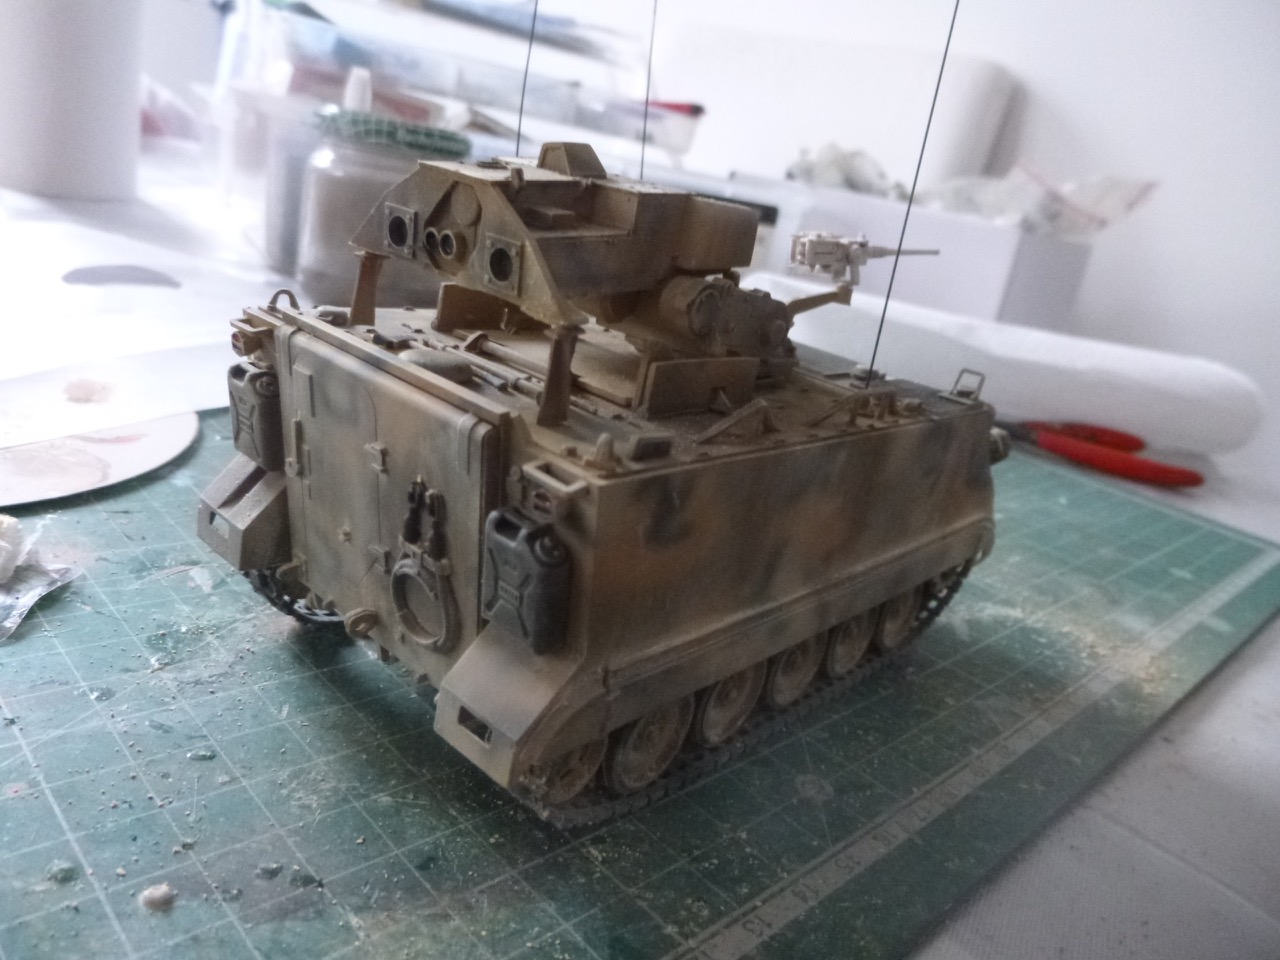 M113 / M109 Tow, une conversion en résine Verlinden au 1/35, base Tamiya 170123124048257262